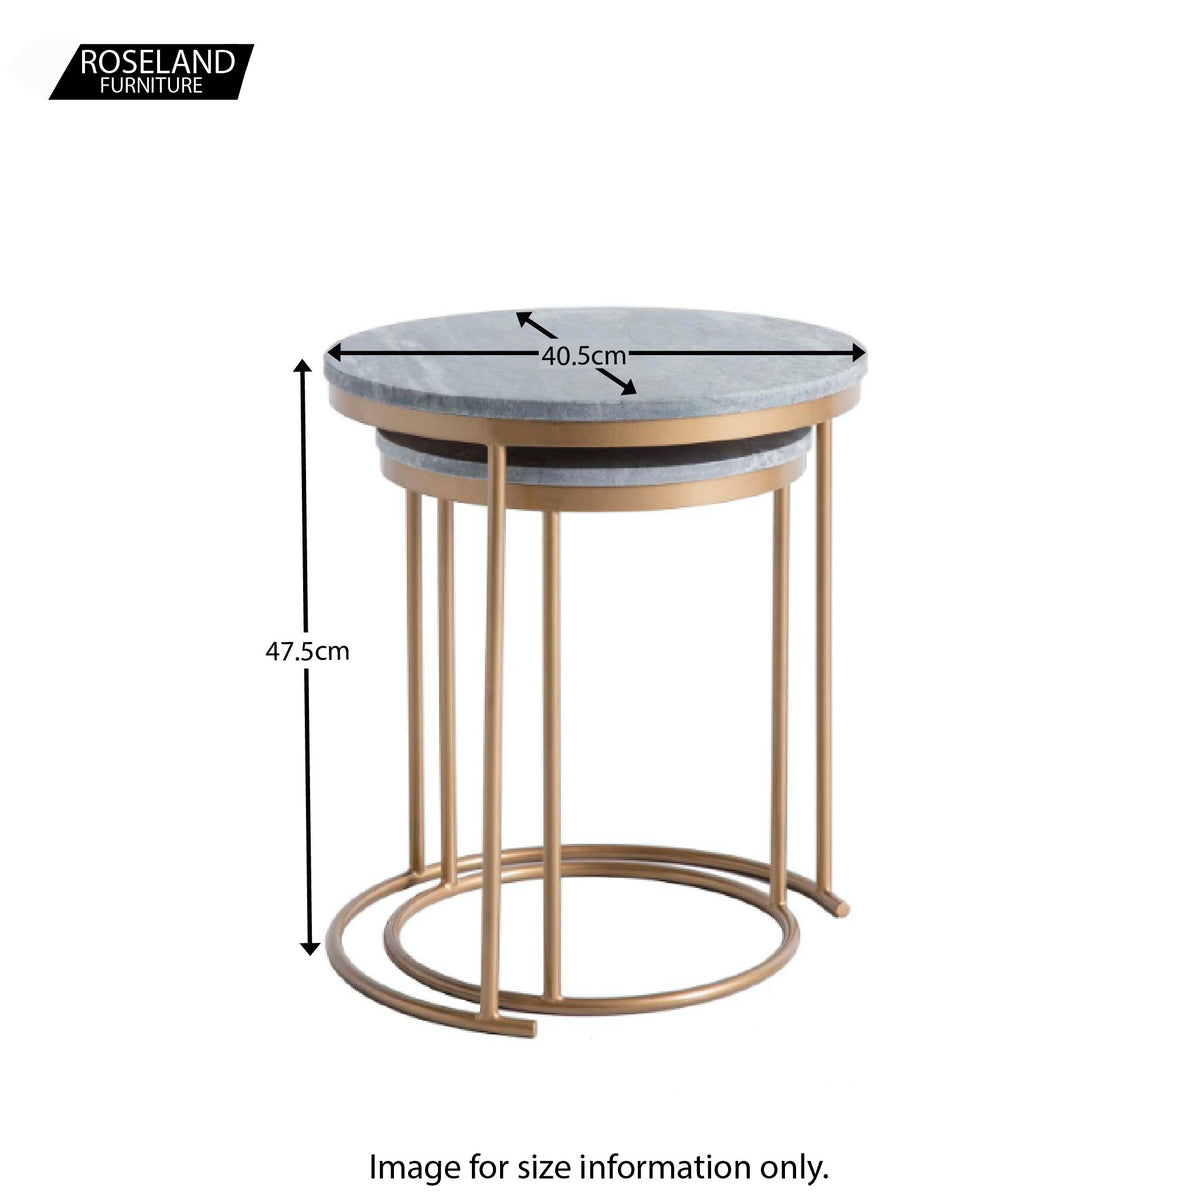 Kandla Grey Marble Round Nest of Tables with Gold Base - Size Guide